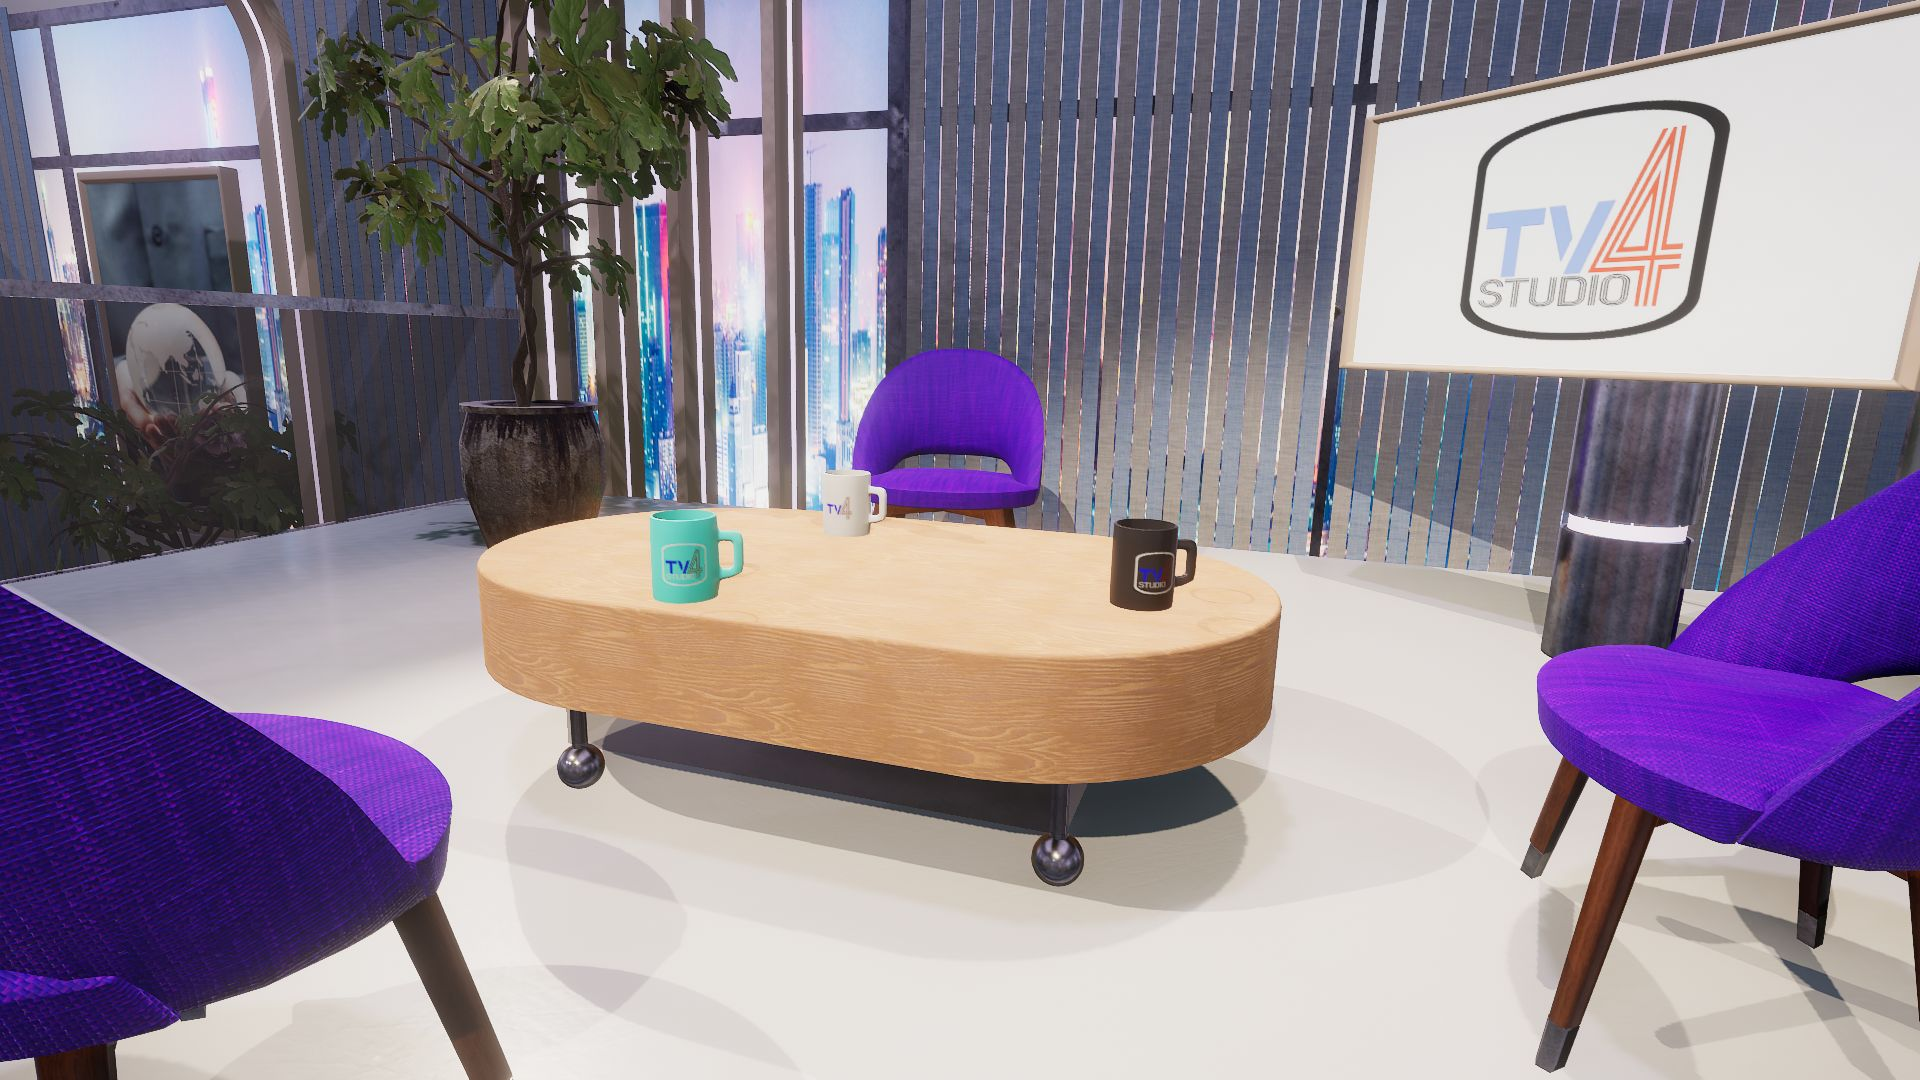 An image showing TV Studio 4. asset pack, created with Unity Engine.